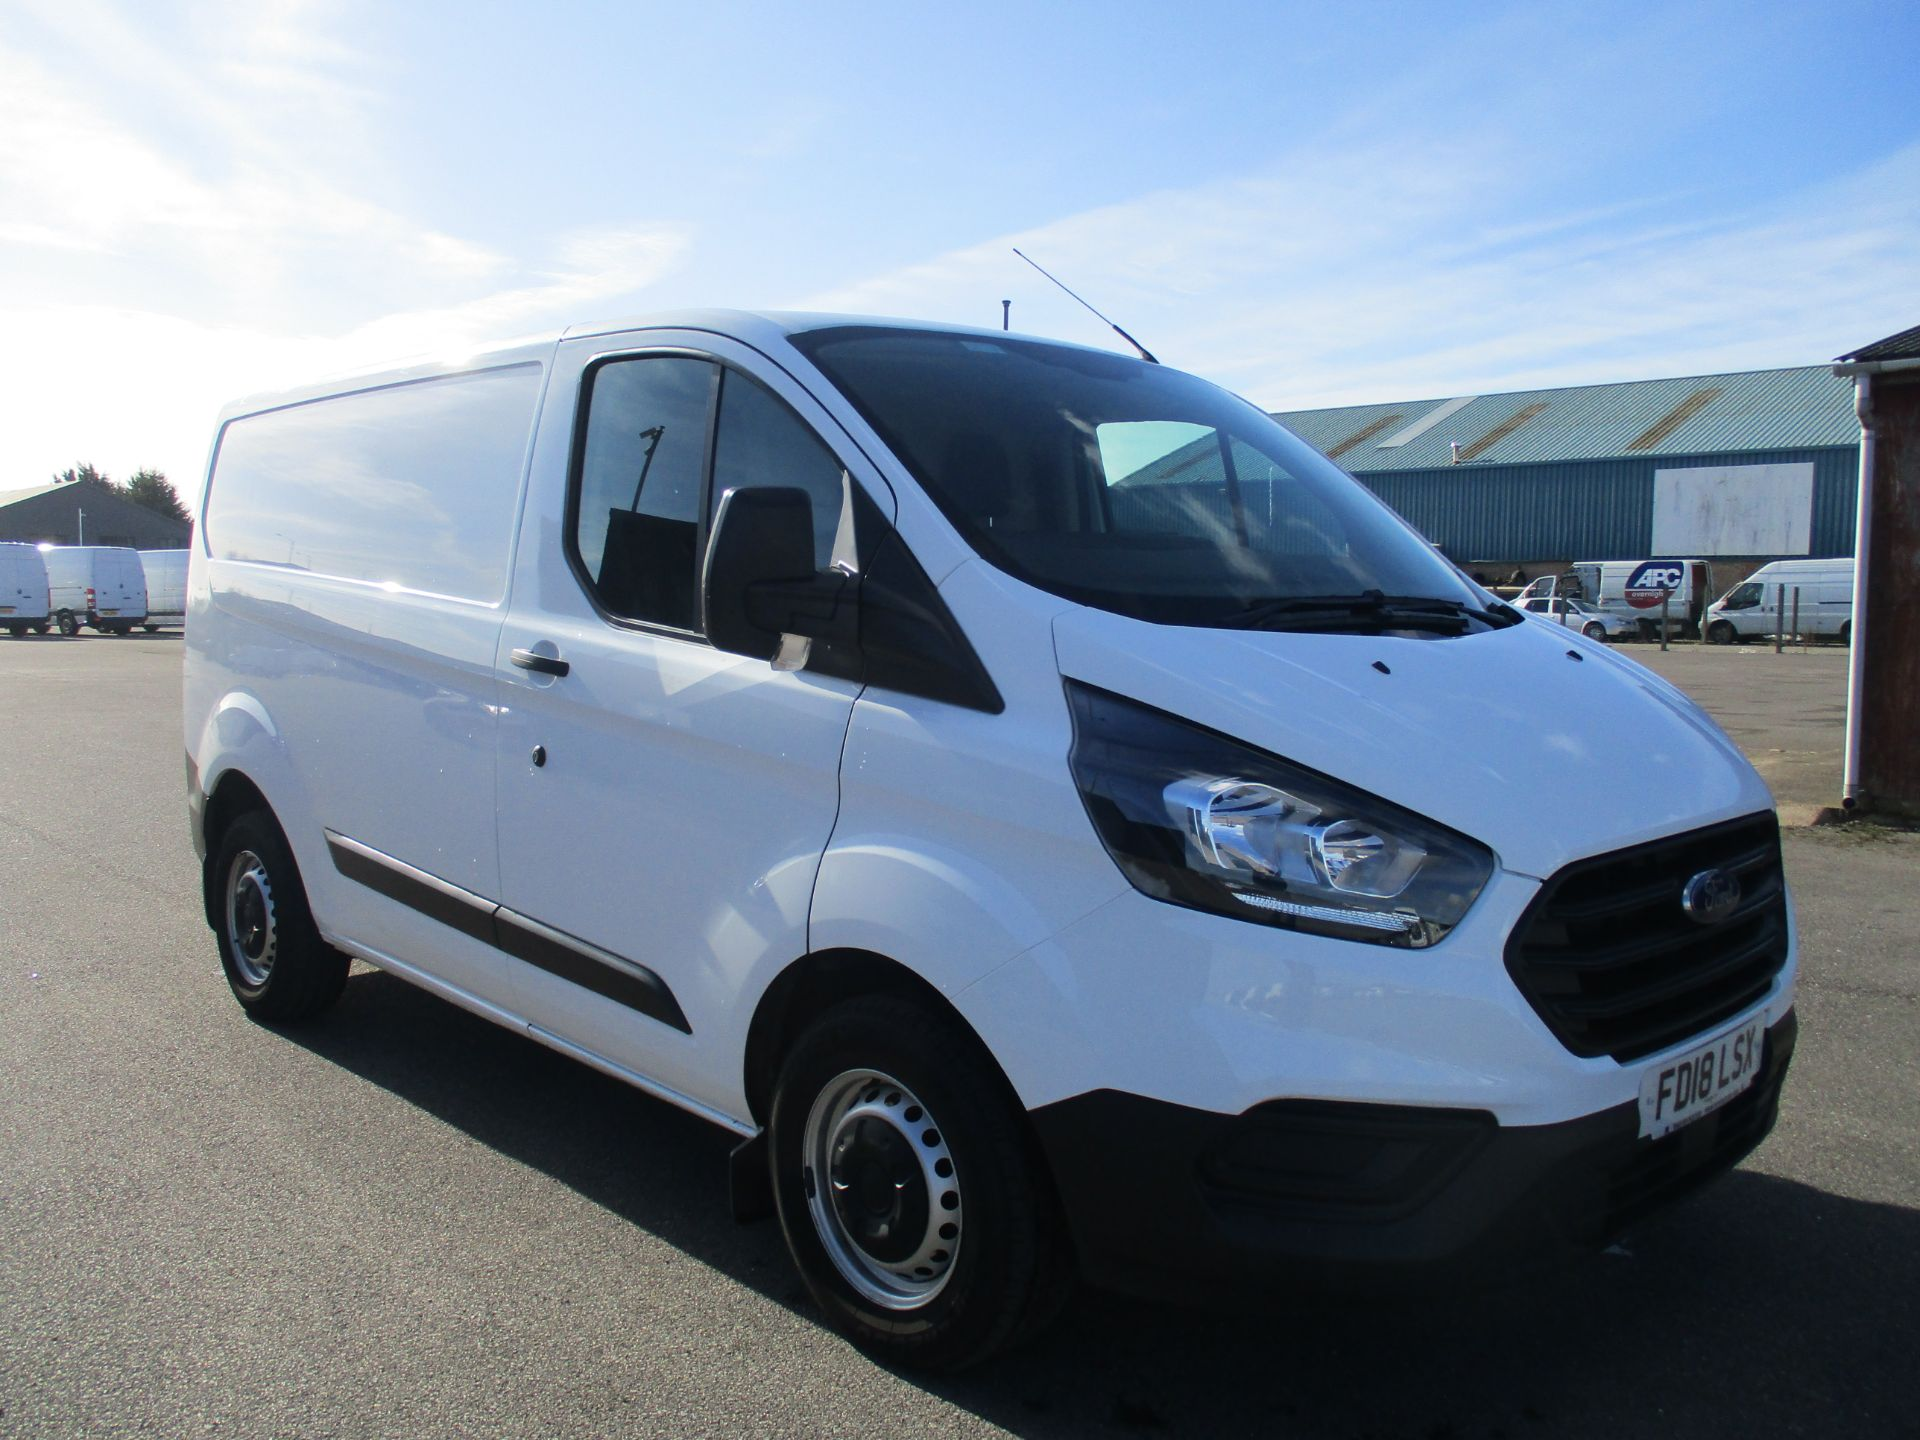 2018 Ford Transit Custom 300 L1 DIESEL FWD 2.0 TDCI 105PS LOW ROOF VAN EURO 6 (FD18LSX)